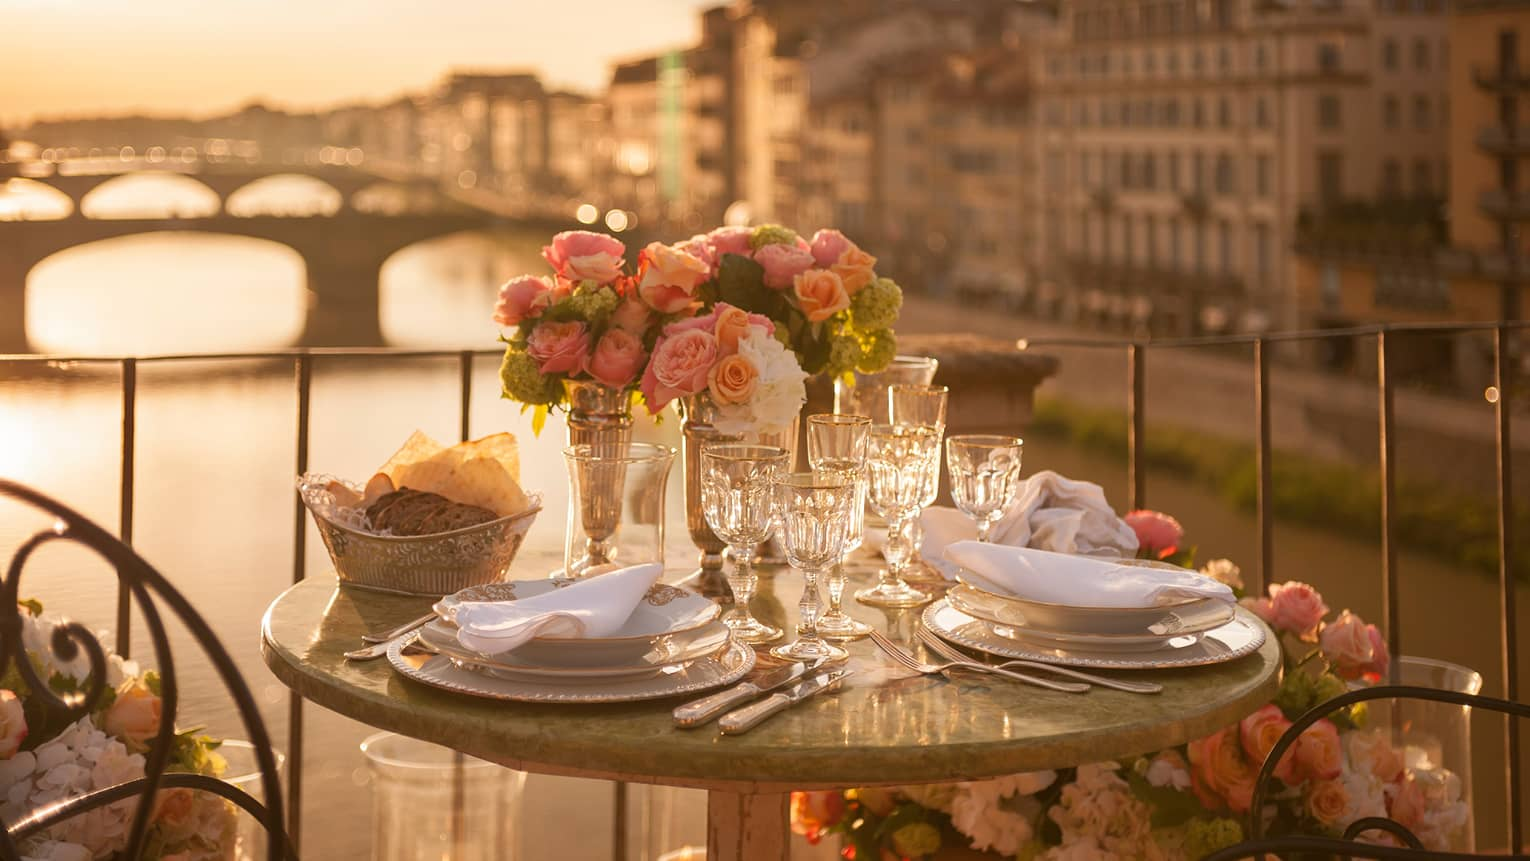 A romantic table for two is set with white porcelain plates, crystal glasses, pink roses on a balcony overlooking a bridge and historic building in Florence